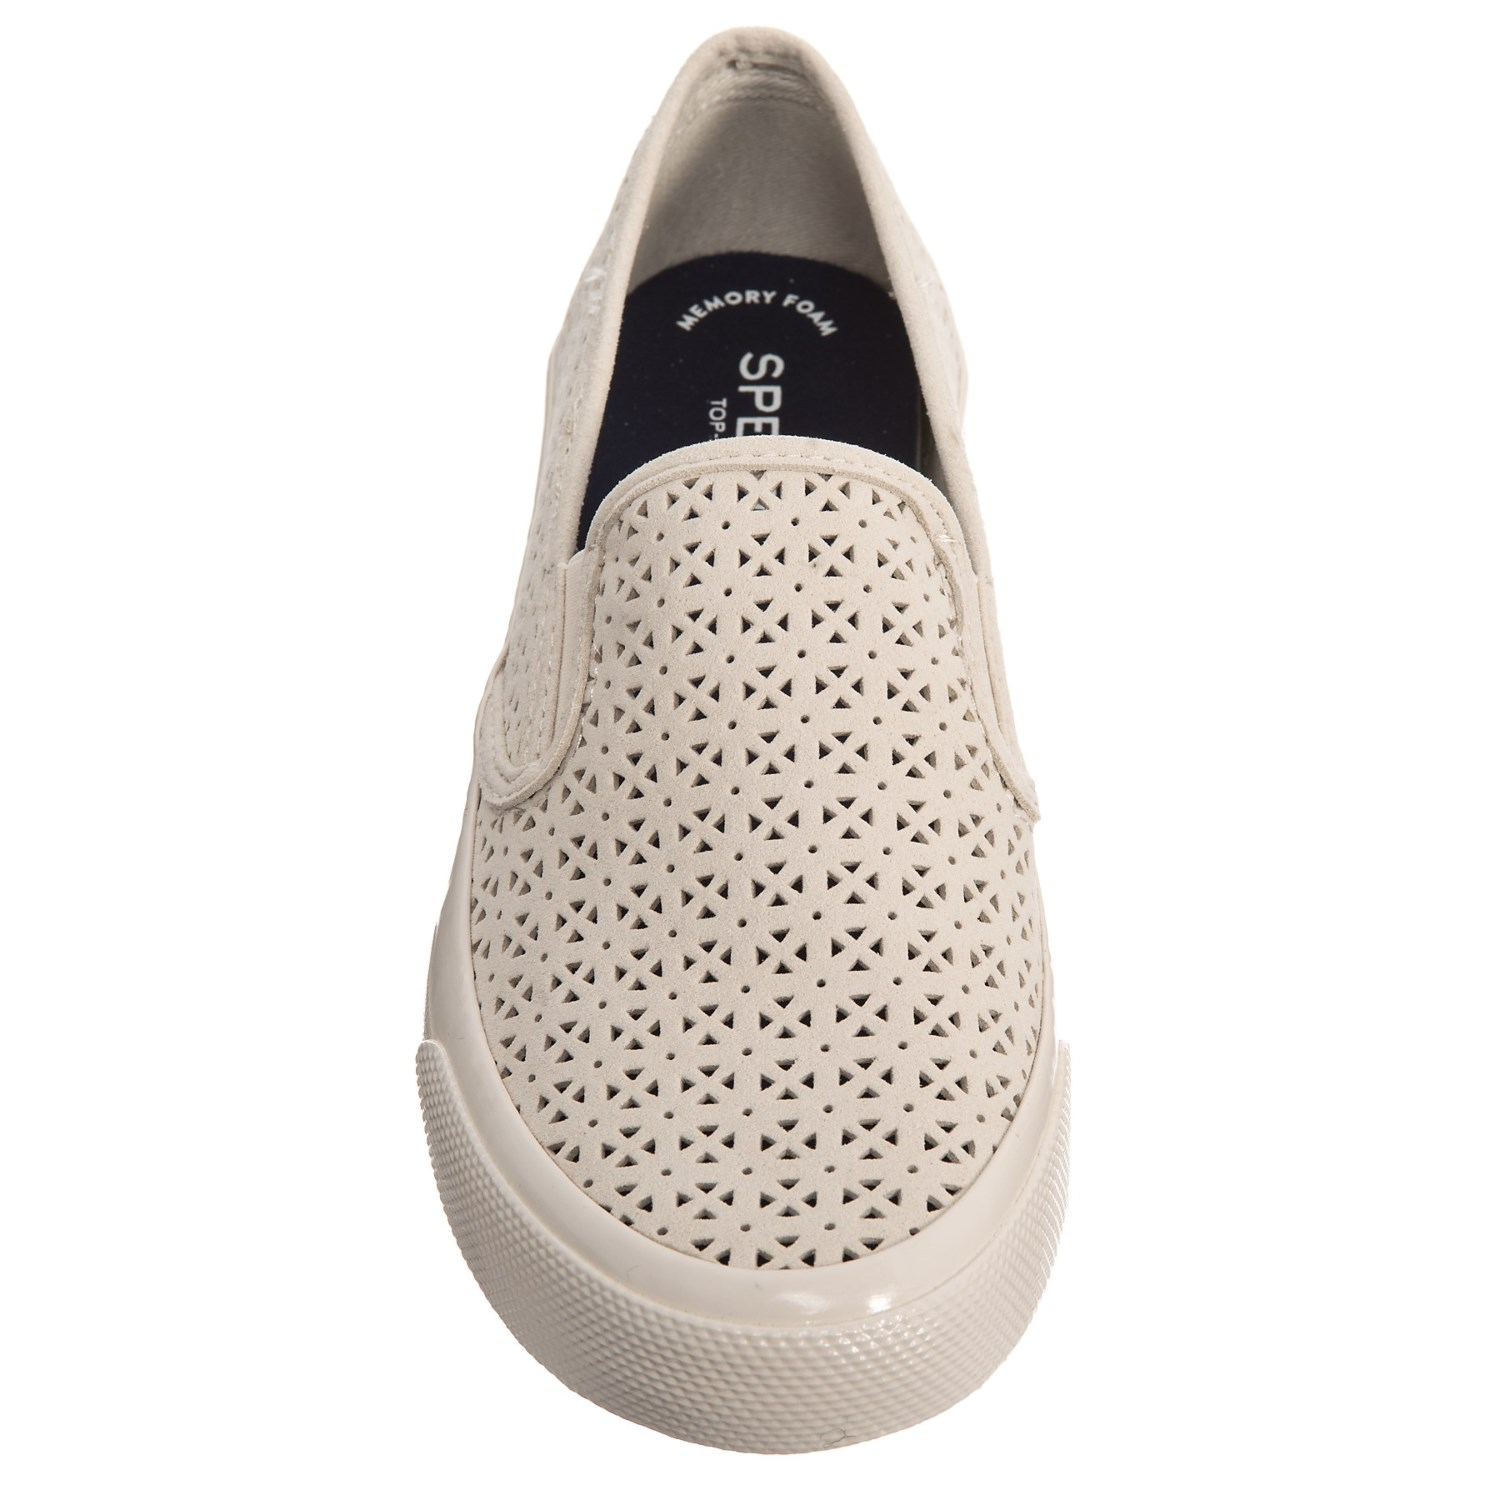 60407107ea02 Sperry Seaside Nautical Perforated Sneakers (For Women)